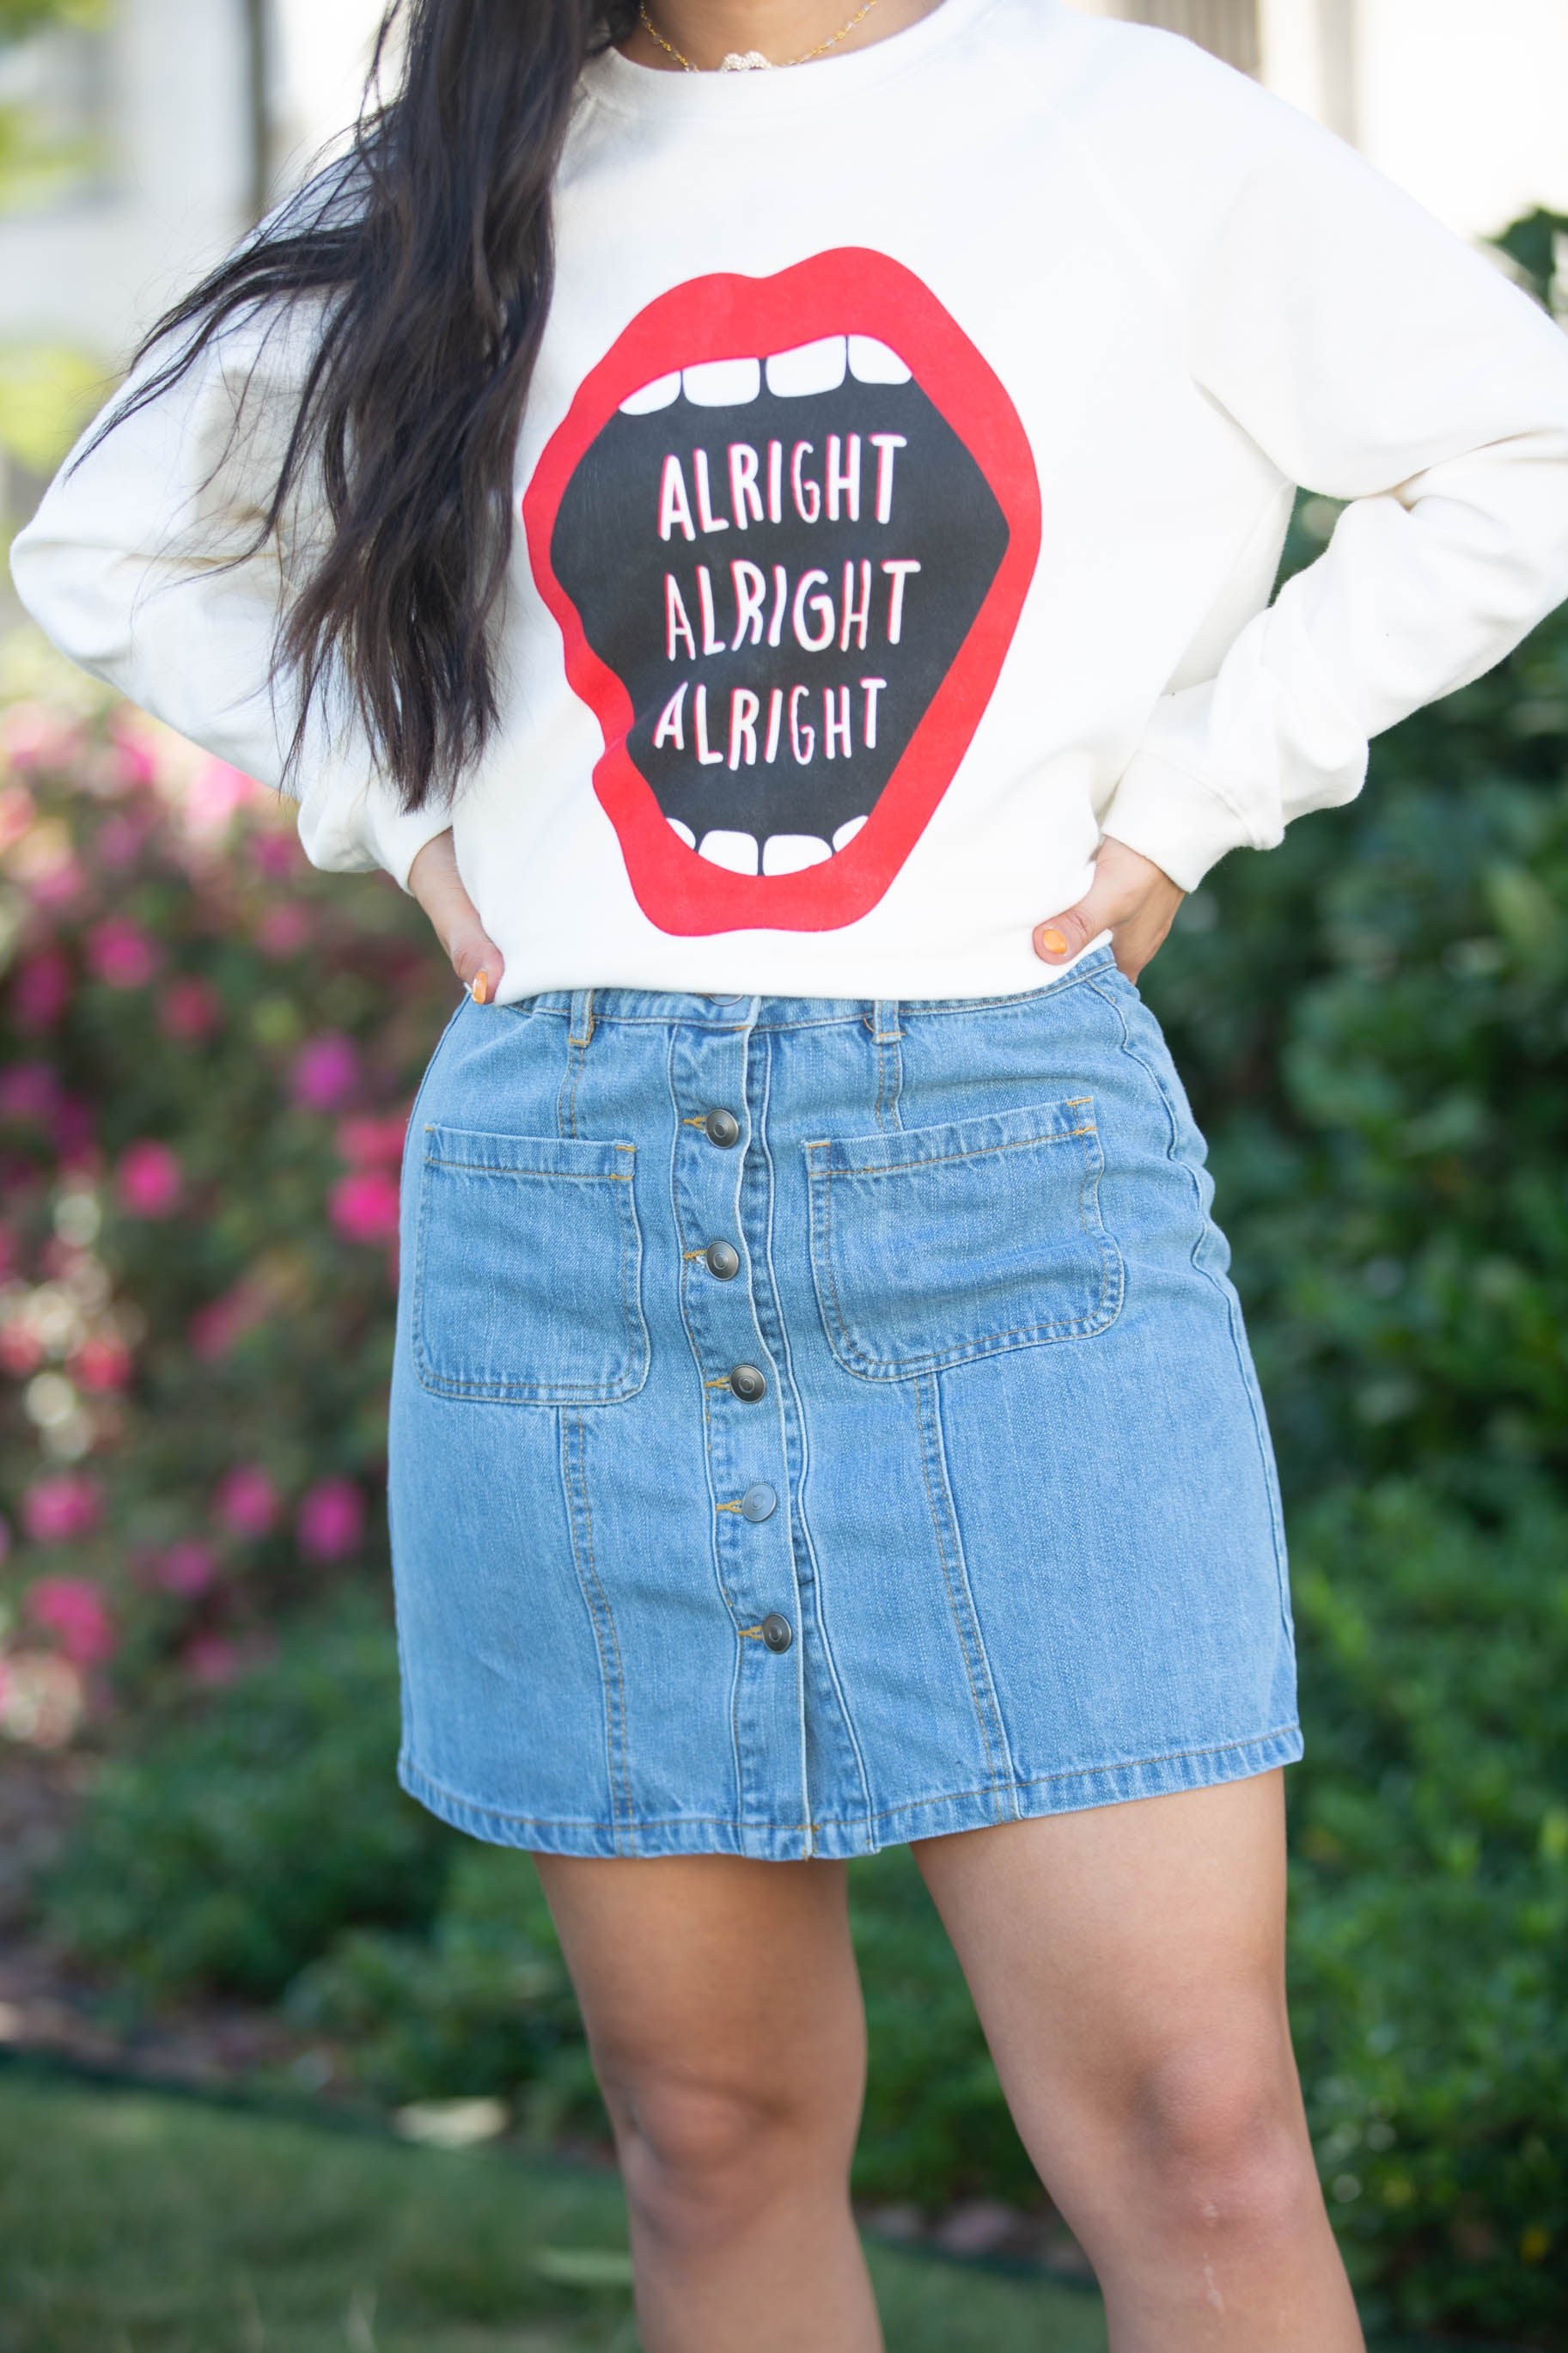 Friends Button Up Light Denim Skirt - The Flawless Babe Boutique